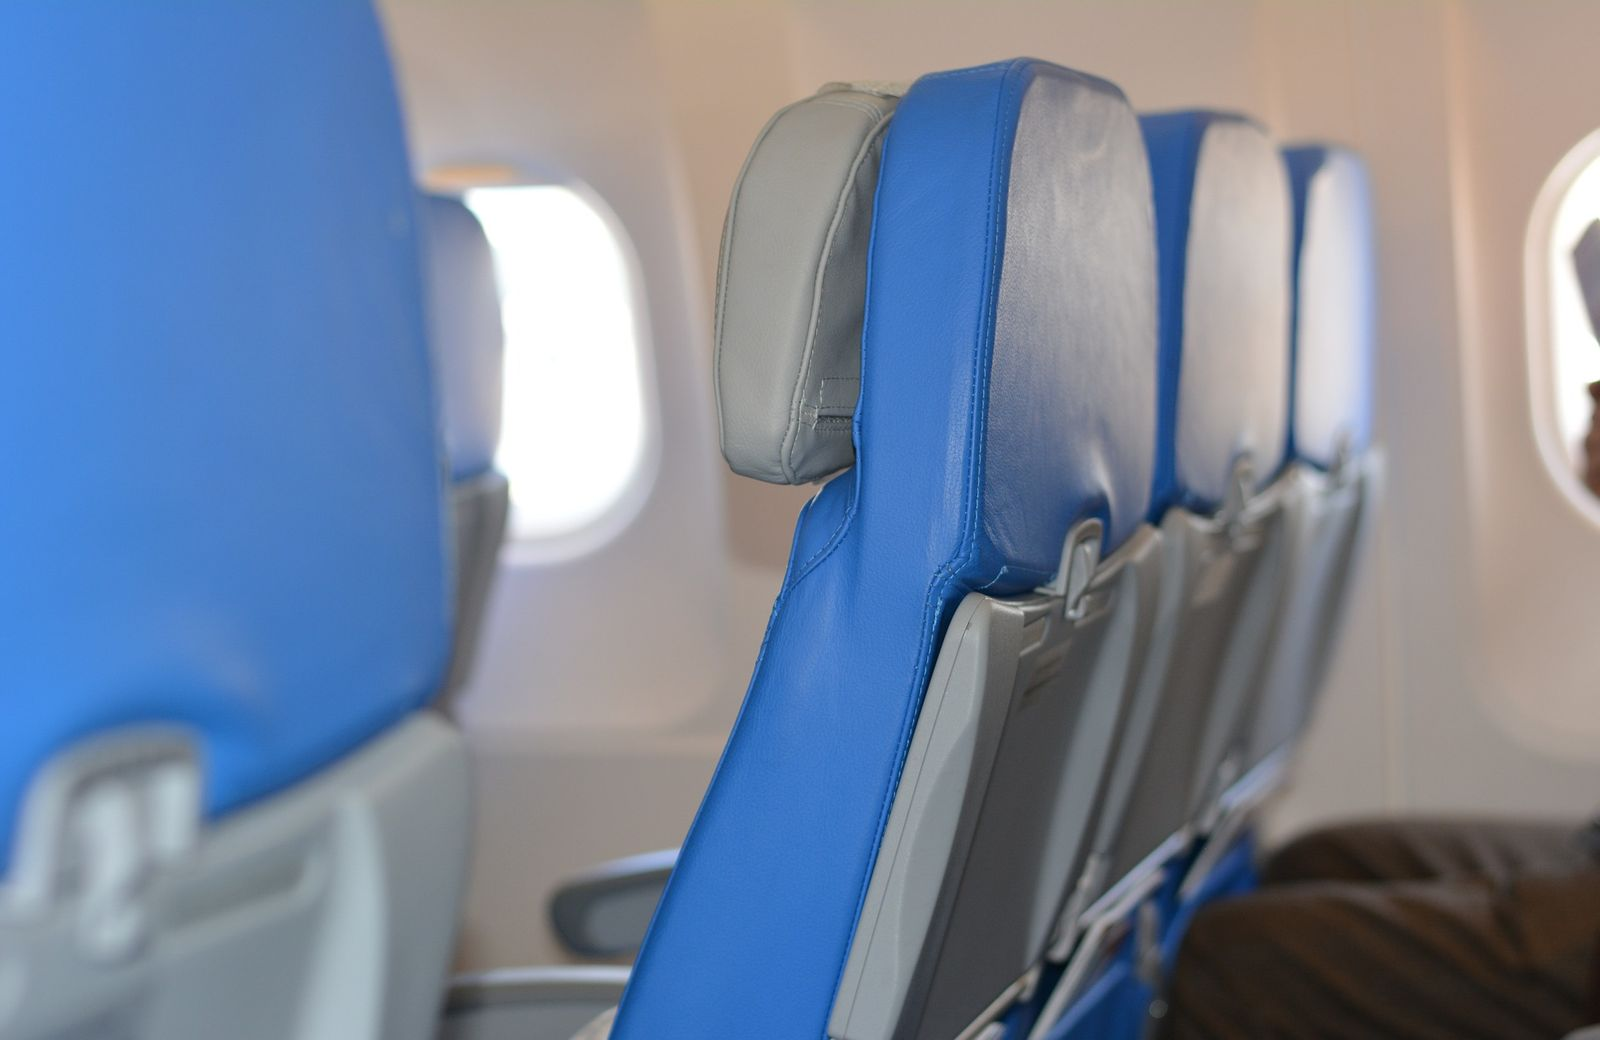 Seat table on airplane to avoid getting sick when you fly.